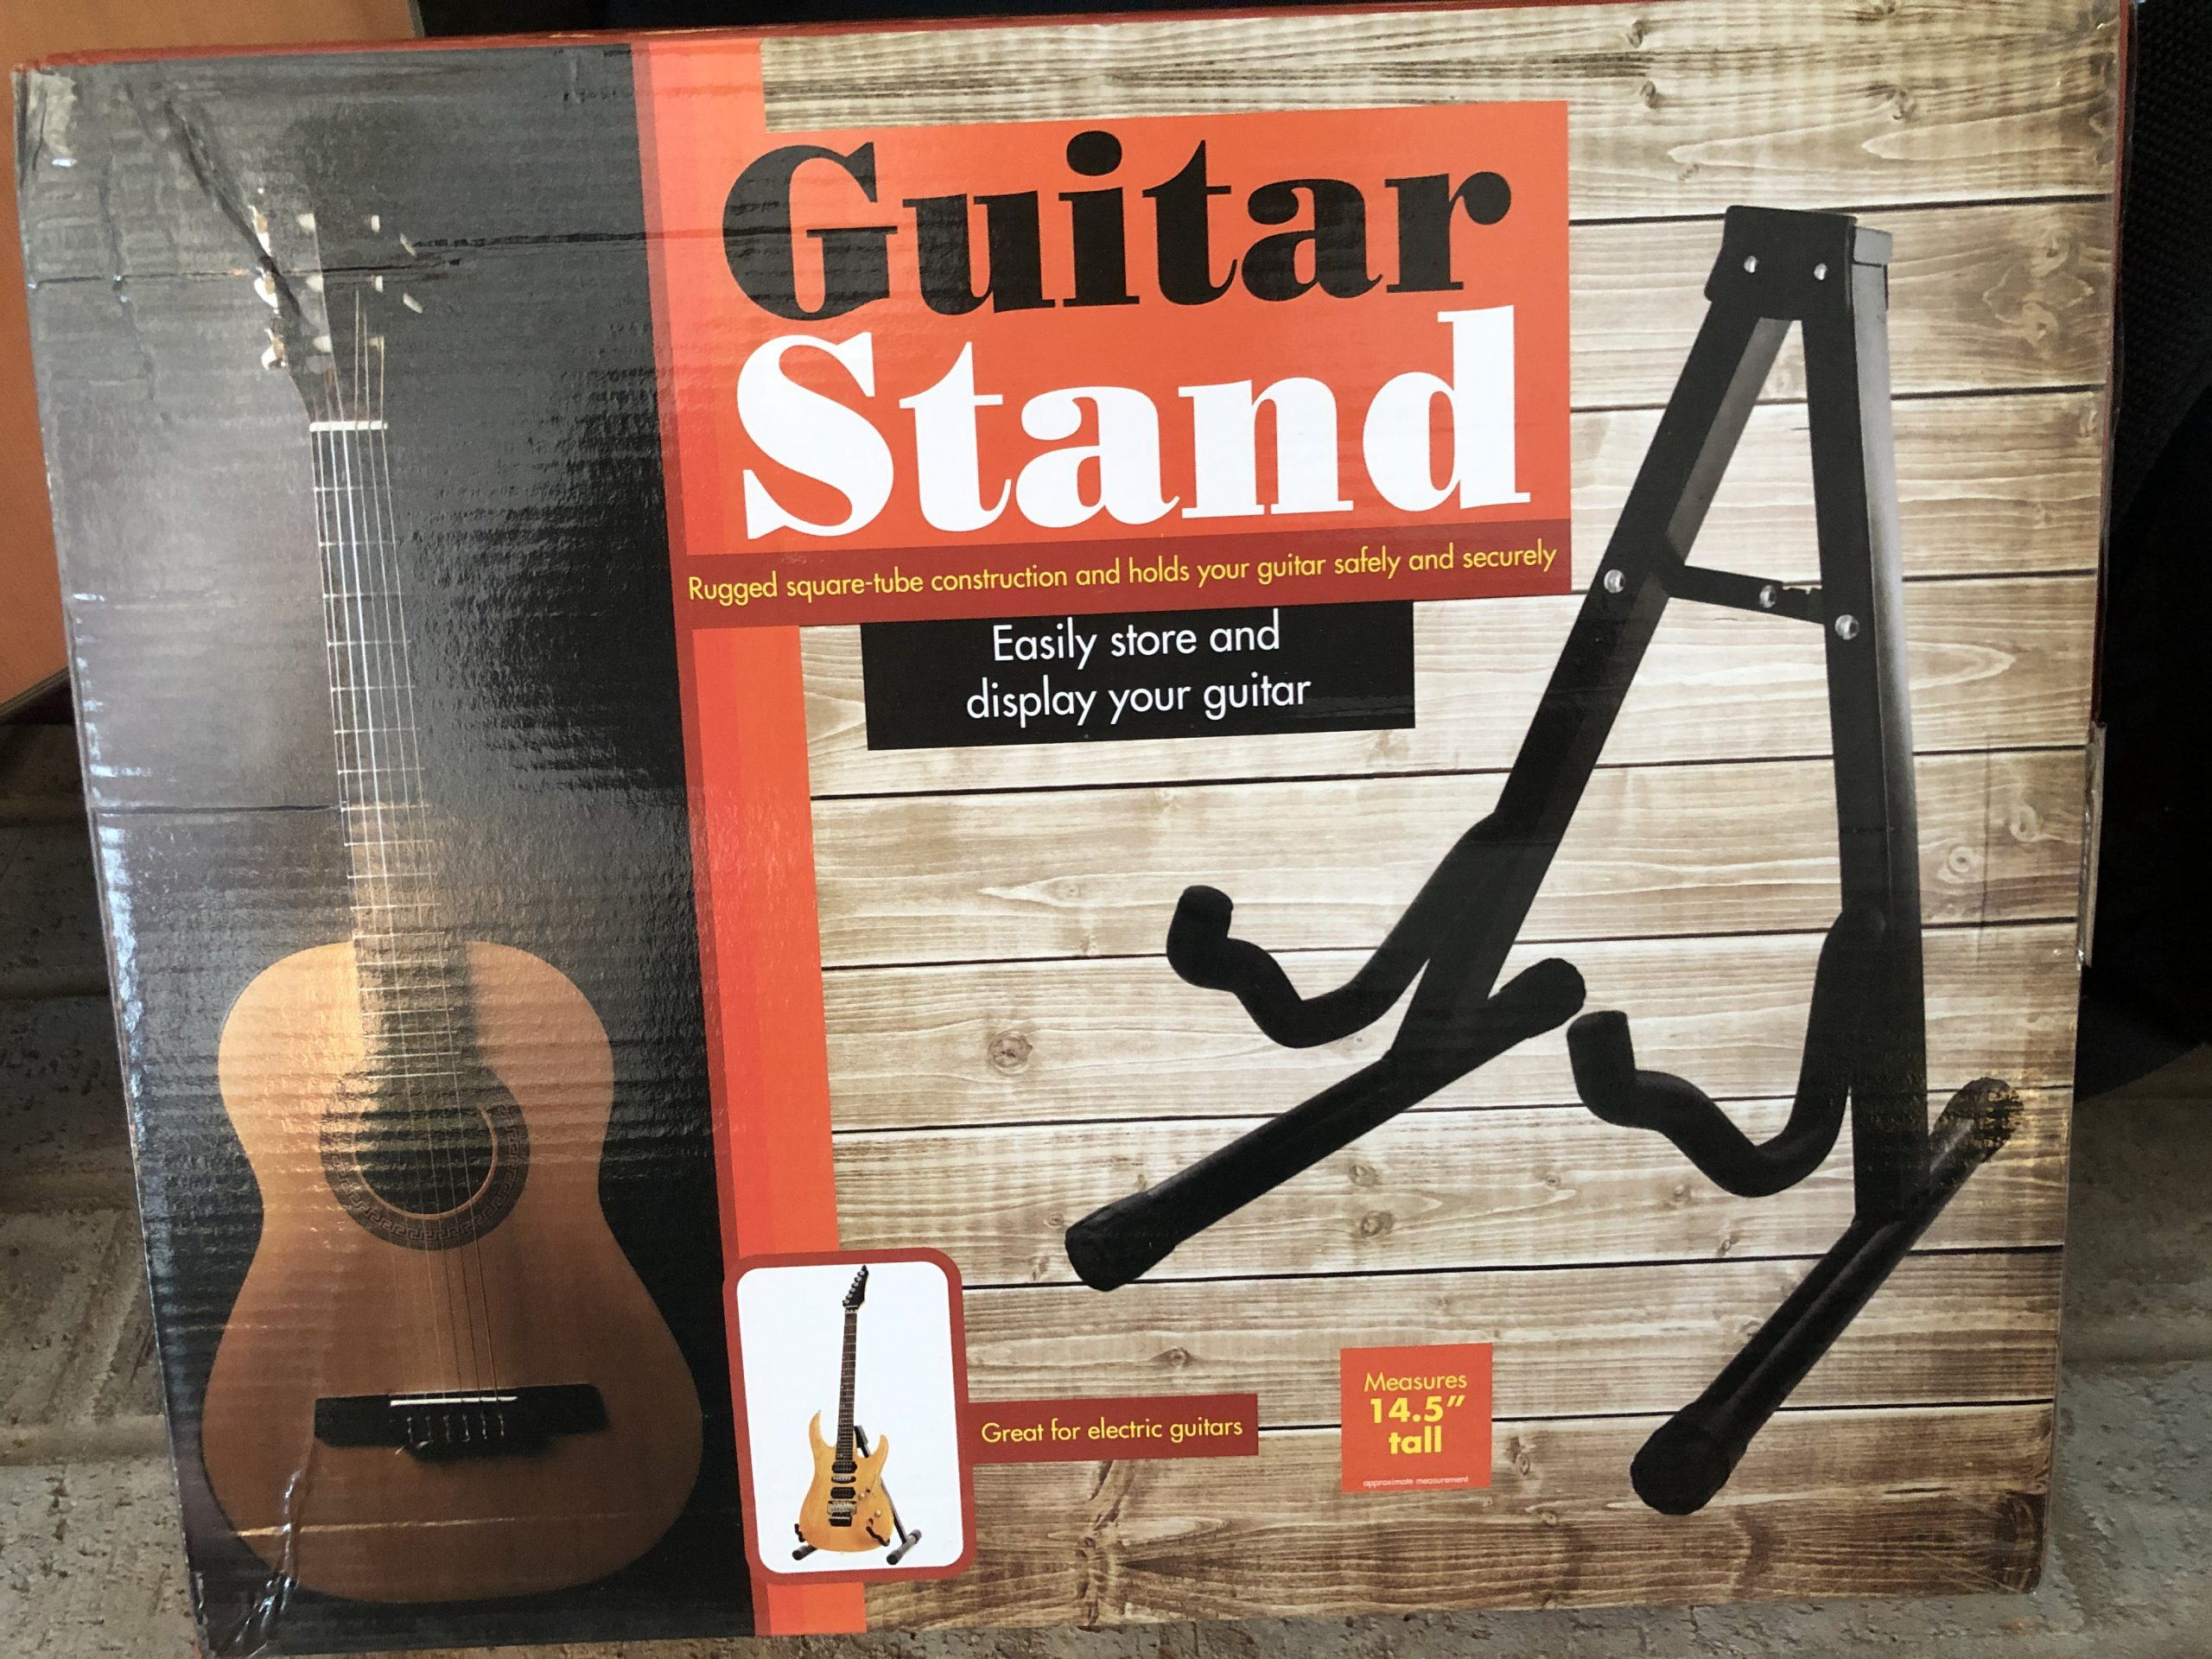 Folding Guitar Stand for Electric or Acoustic Guitars